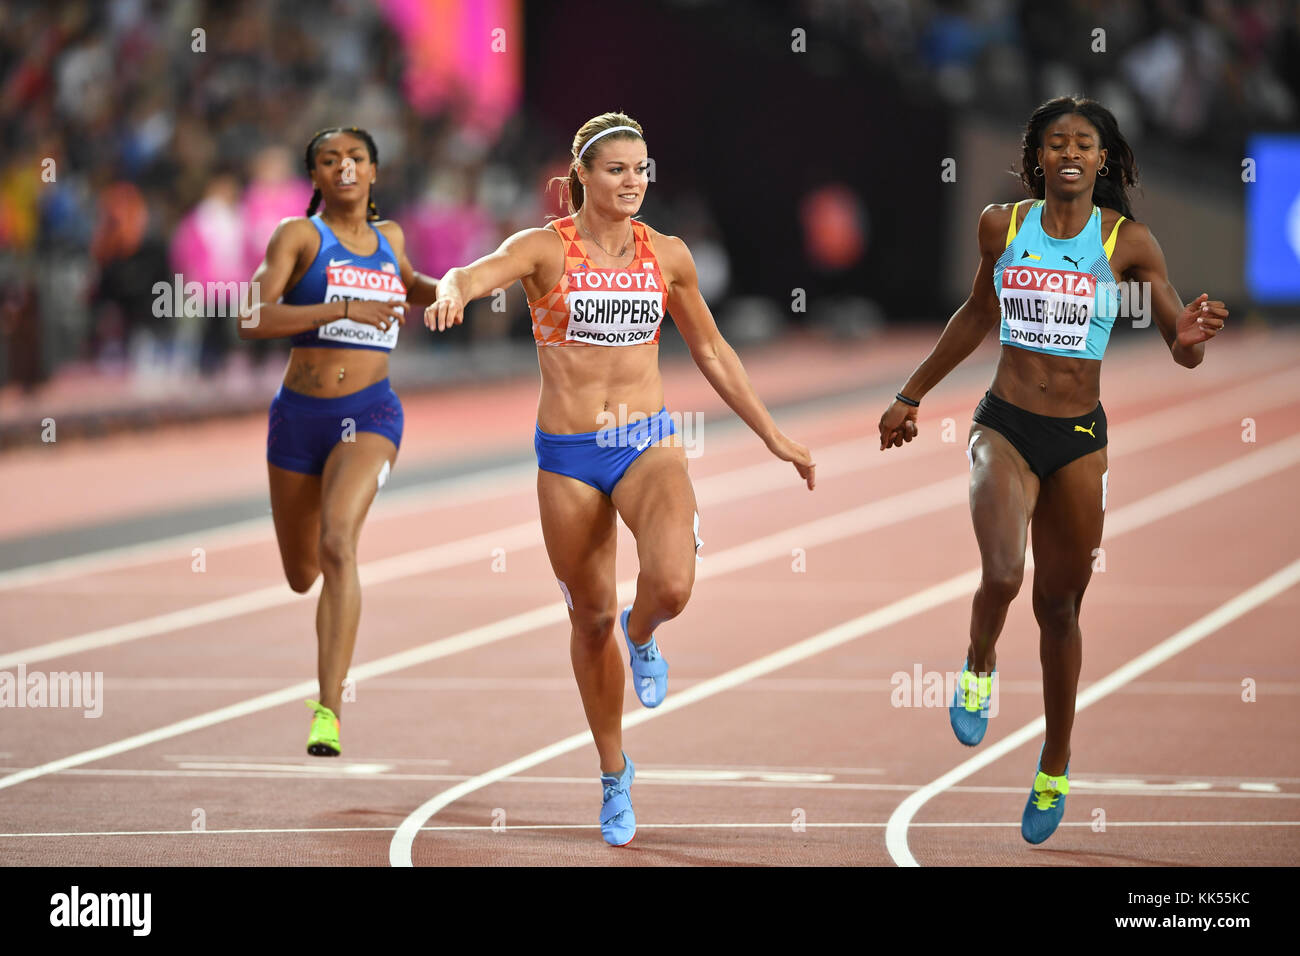 Dafne Schippers - 200m women Gold Medal - IAAF World Championships London 2017 - Stock Image